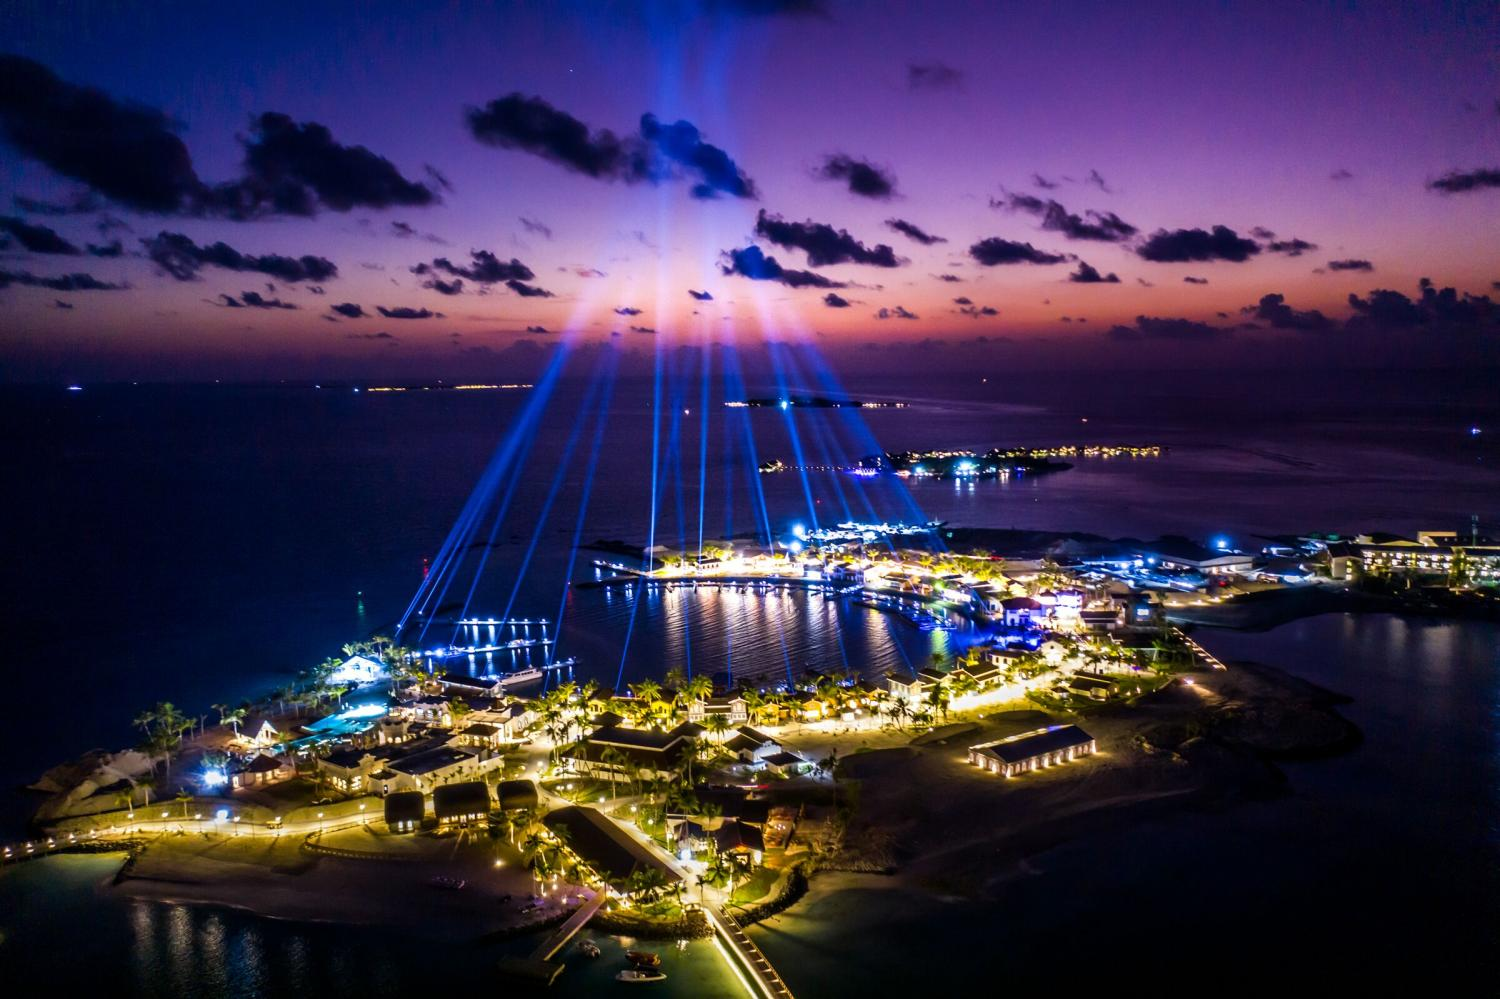 The Marina @ Crossroads, home to a lifestyle district and the heart of the megaproject, is lit up during the official launch ceremony in the Maldives.